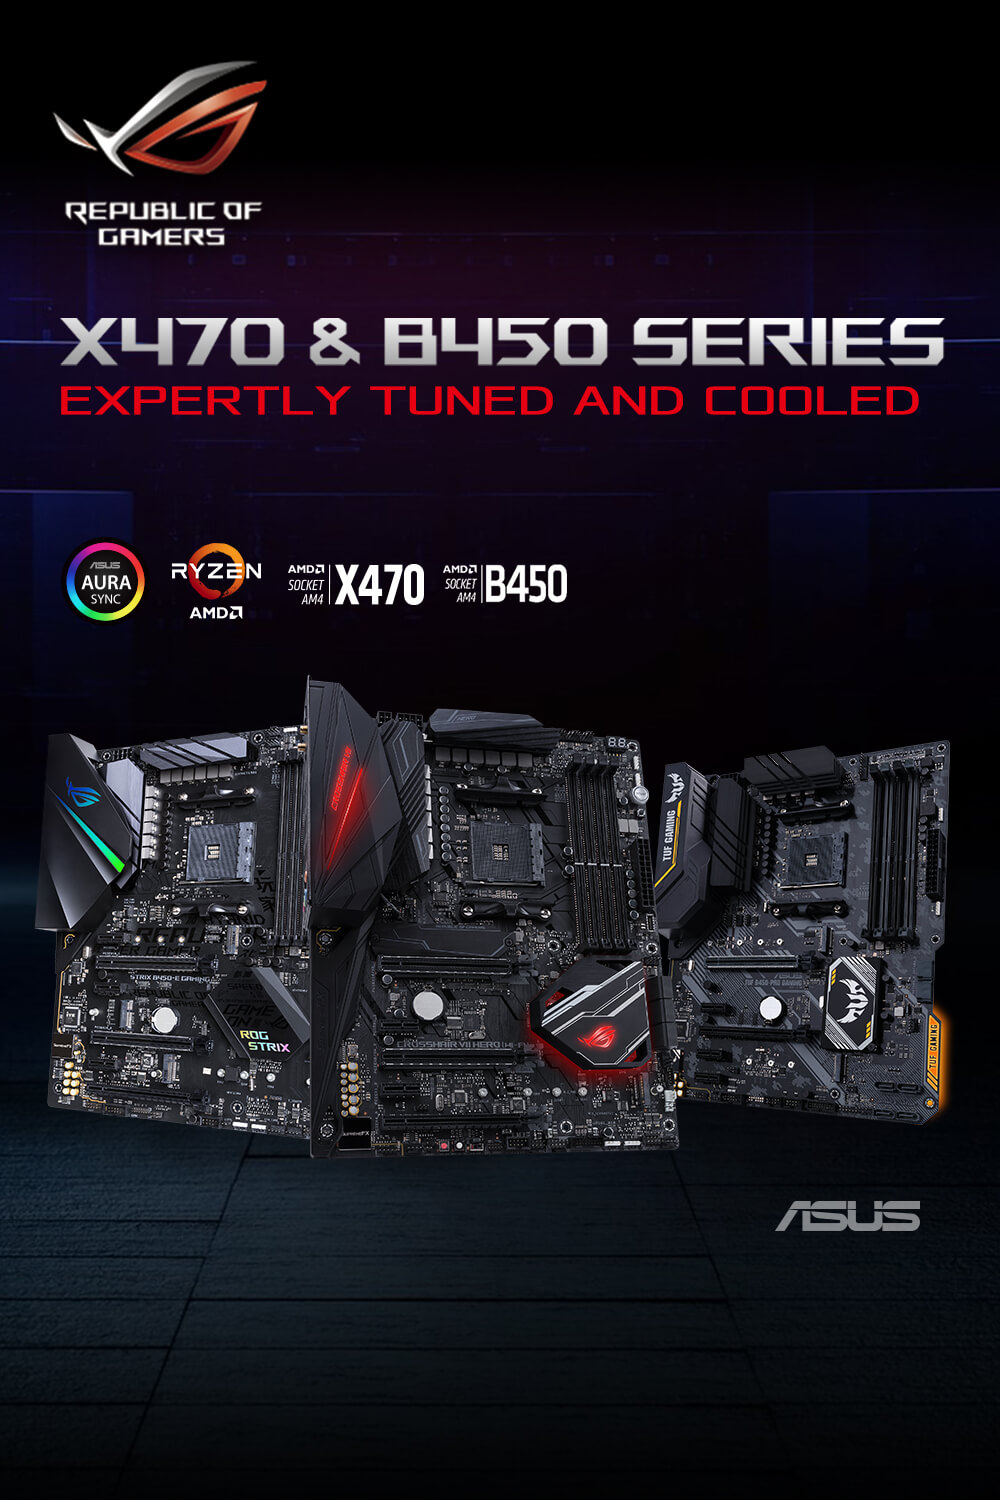 ASUS X470 motherboards